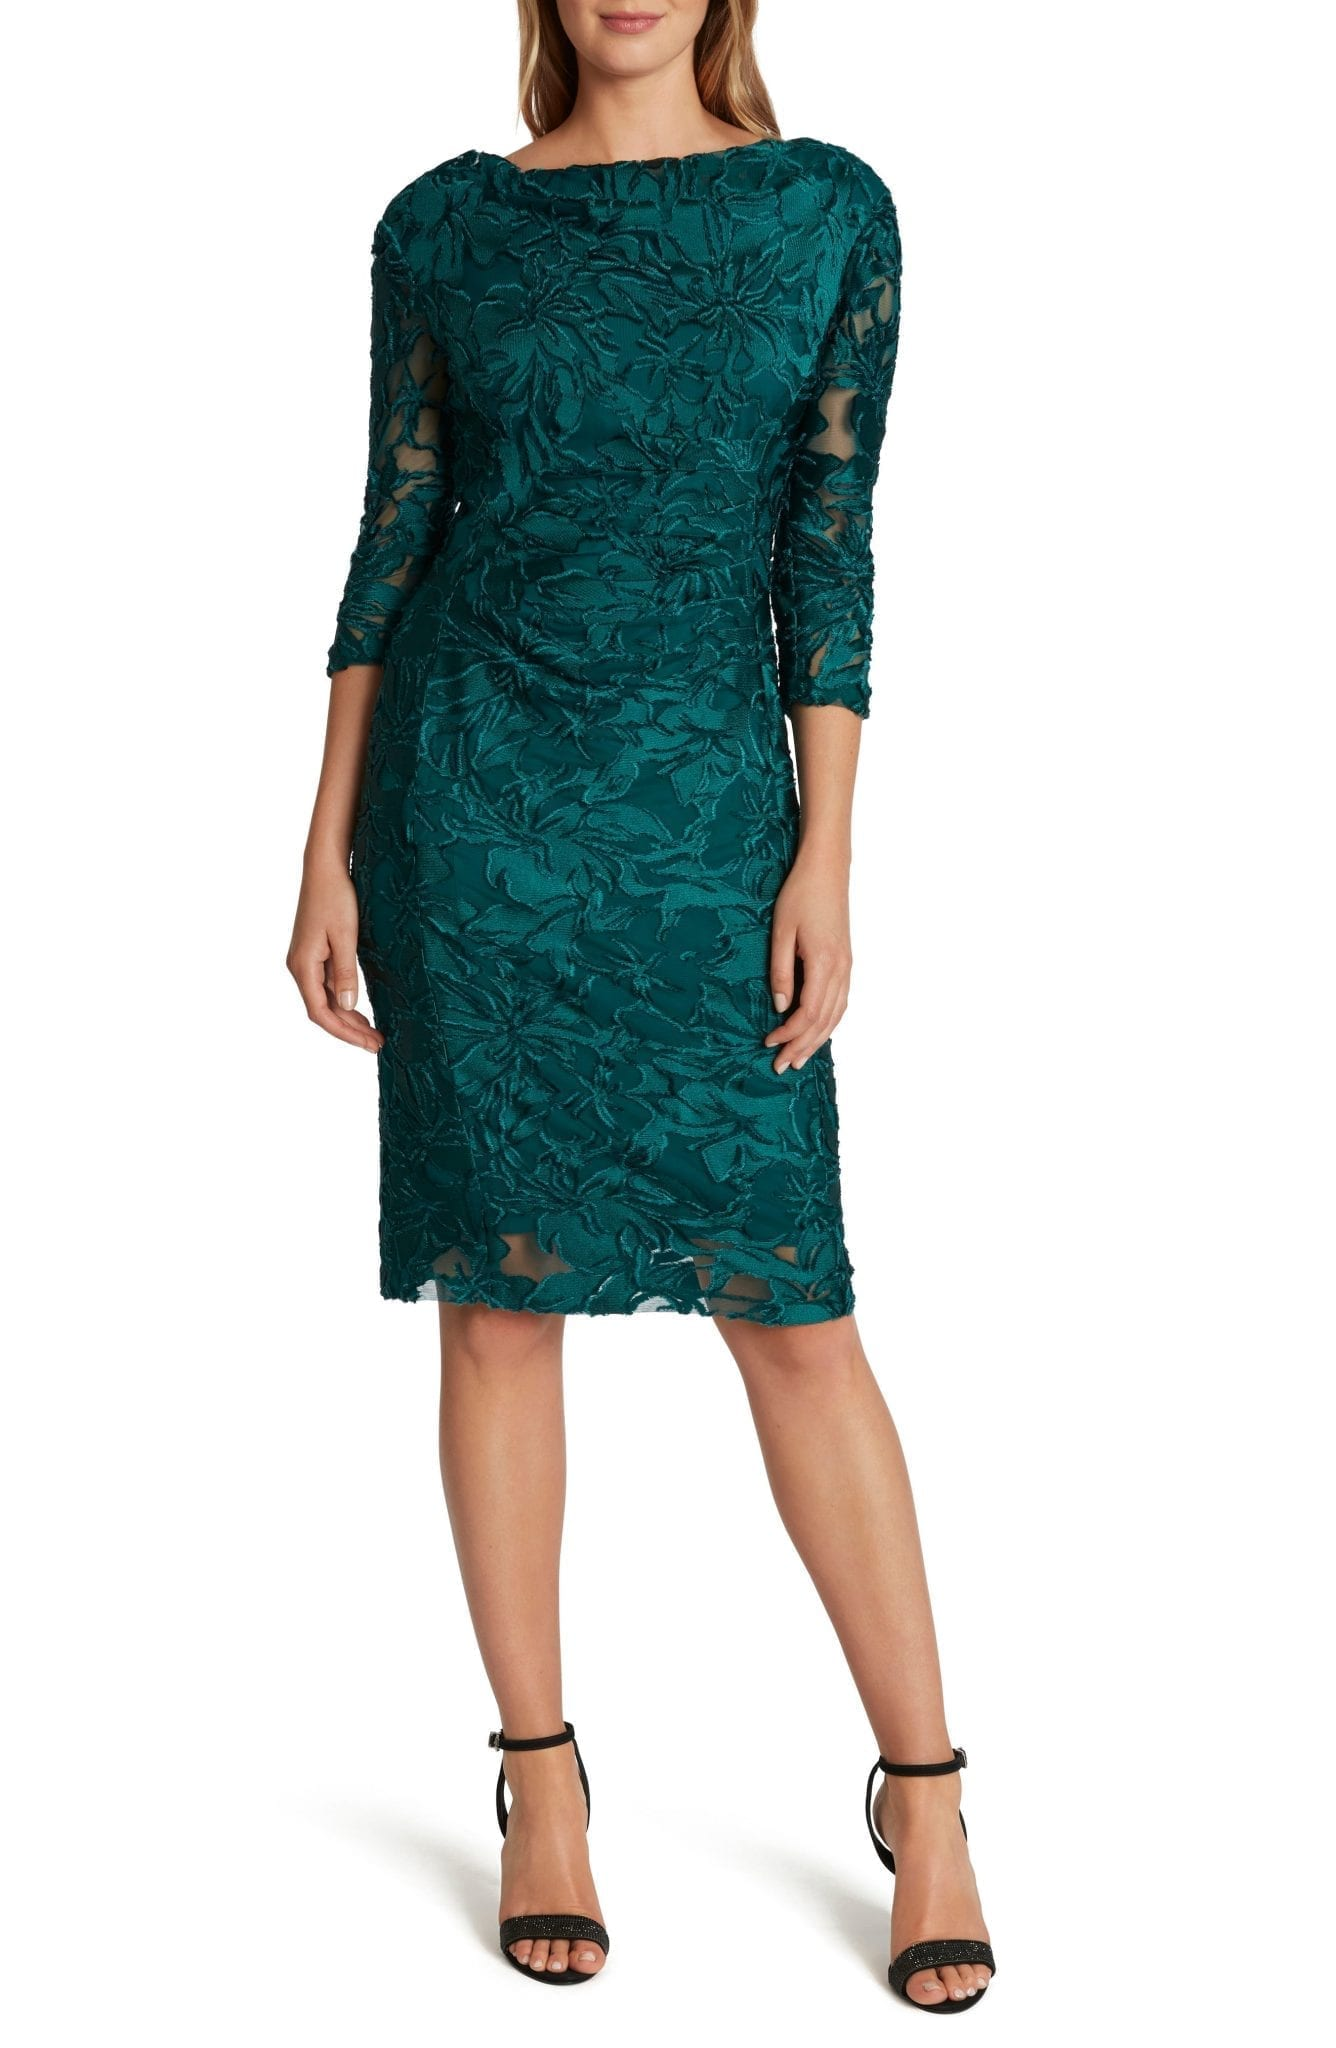 TAHARI Velvet Jacquard Cocktail Sheath Dress